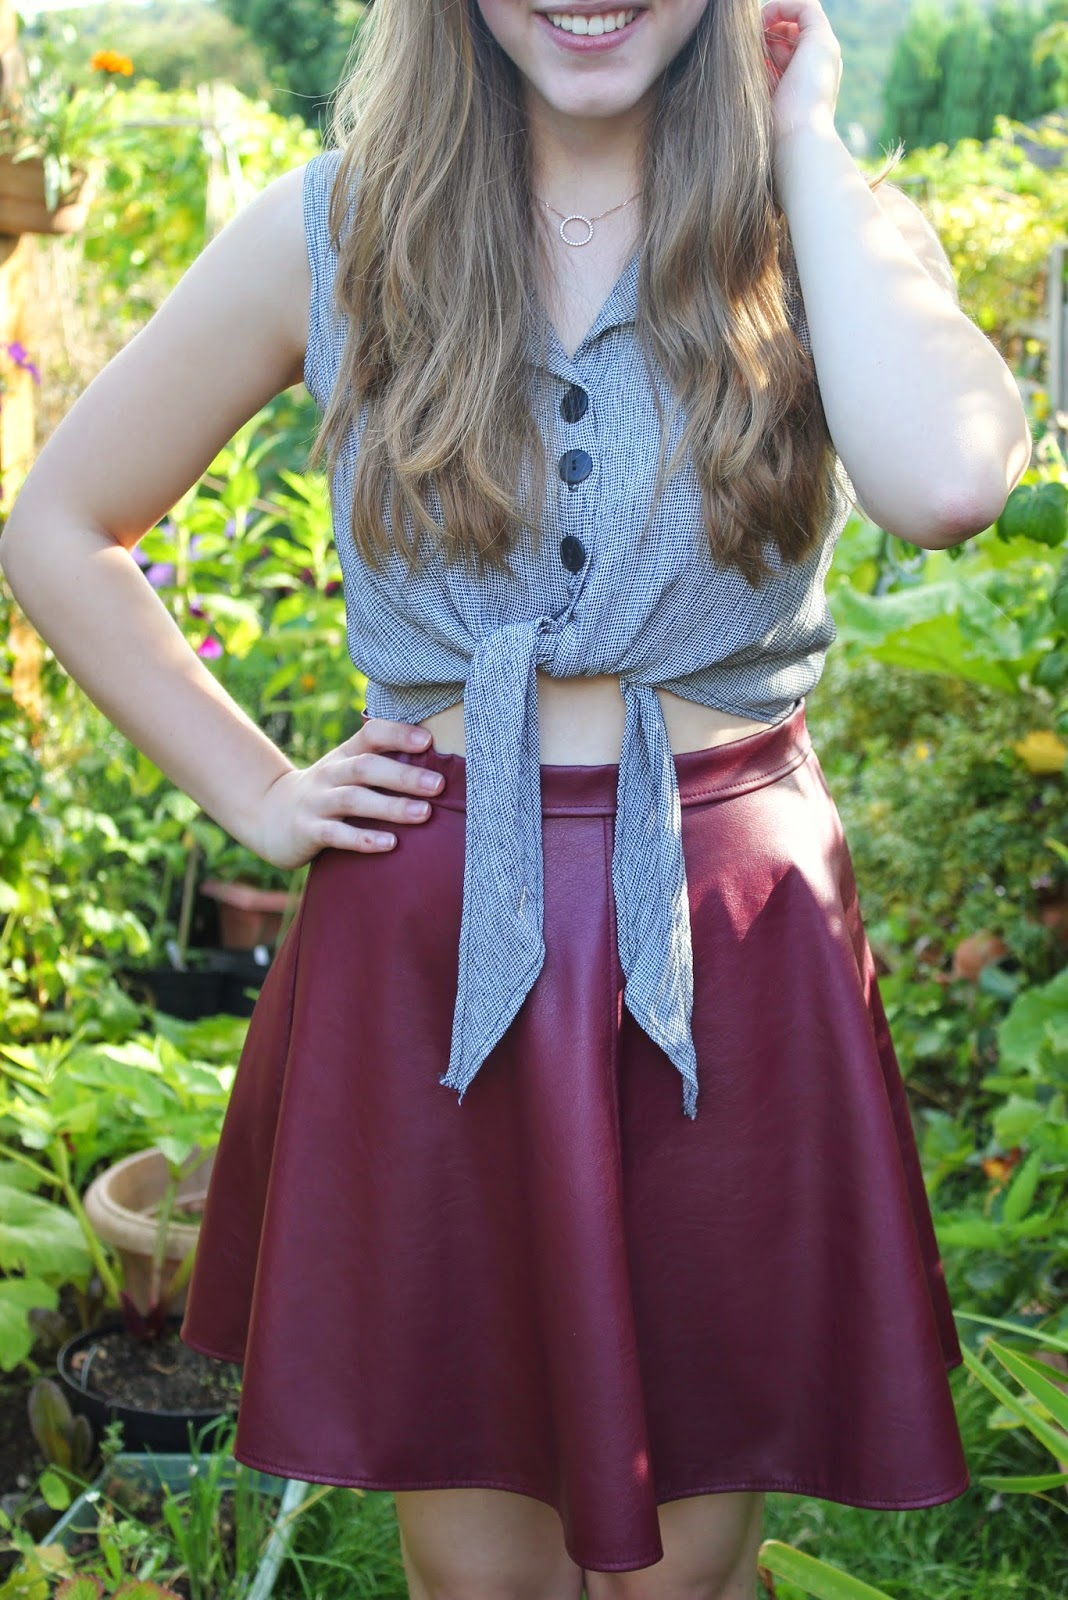 ootd-you're-nobody-but-yourself-shirt-garden-skirt-outfit-fashion-bloggers-clothes-style-inspiration